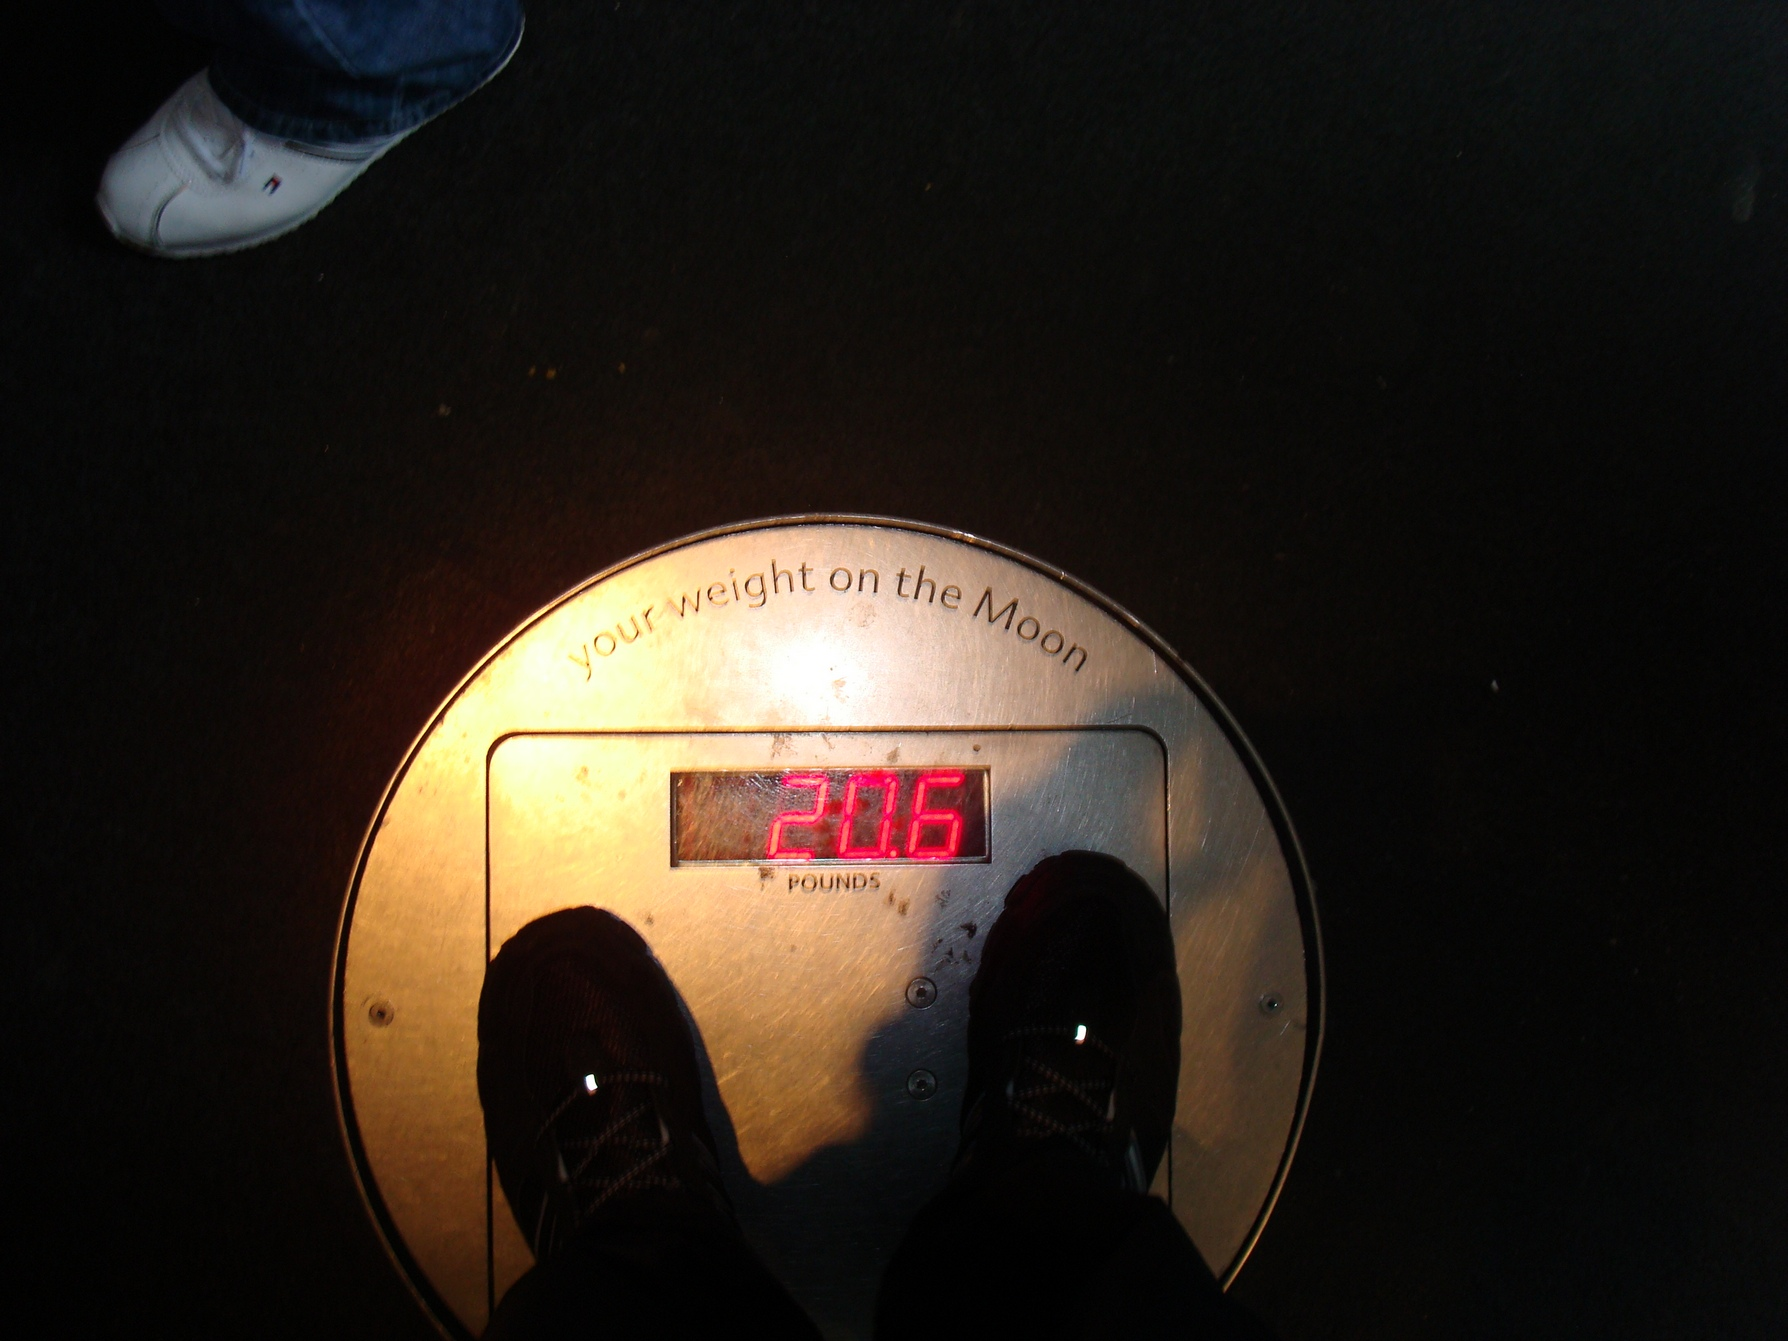 New York City, AMNH, Weight on the Moon